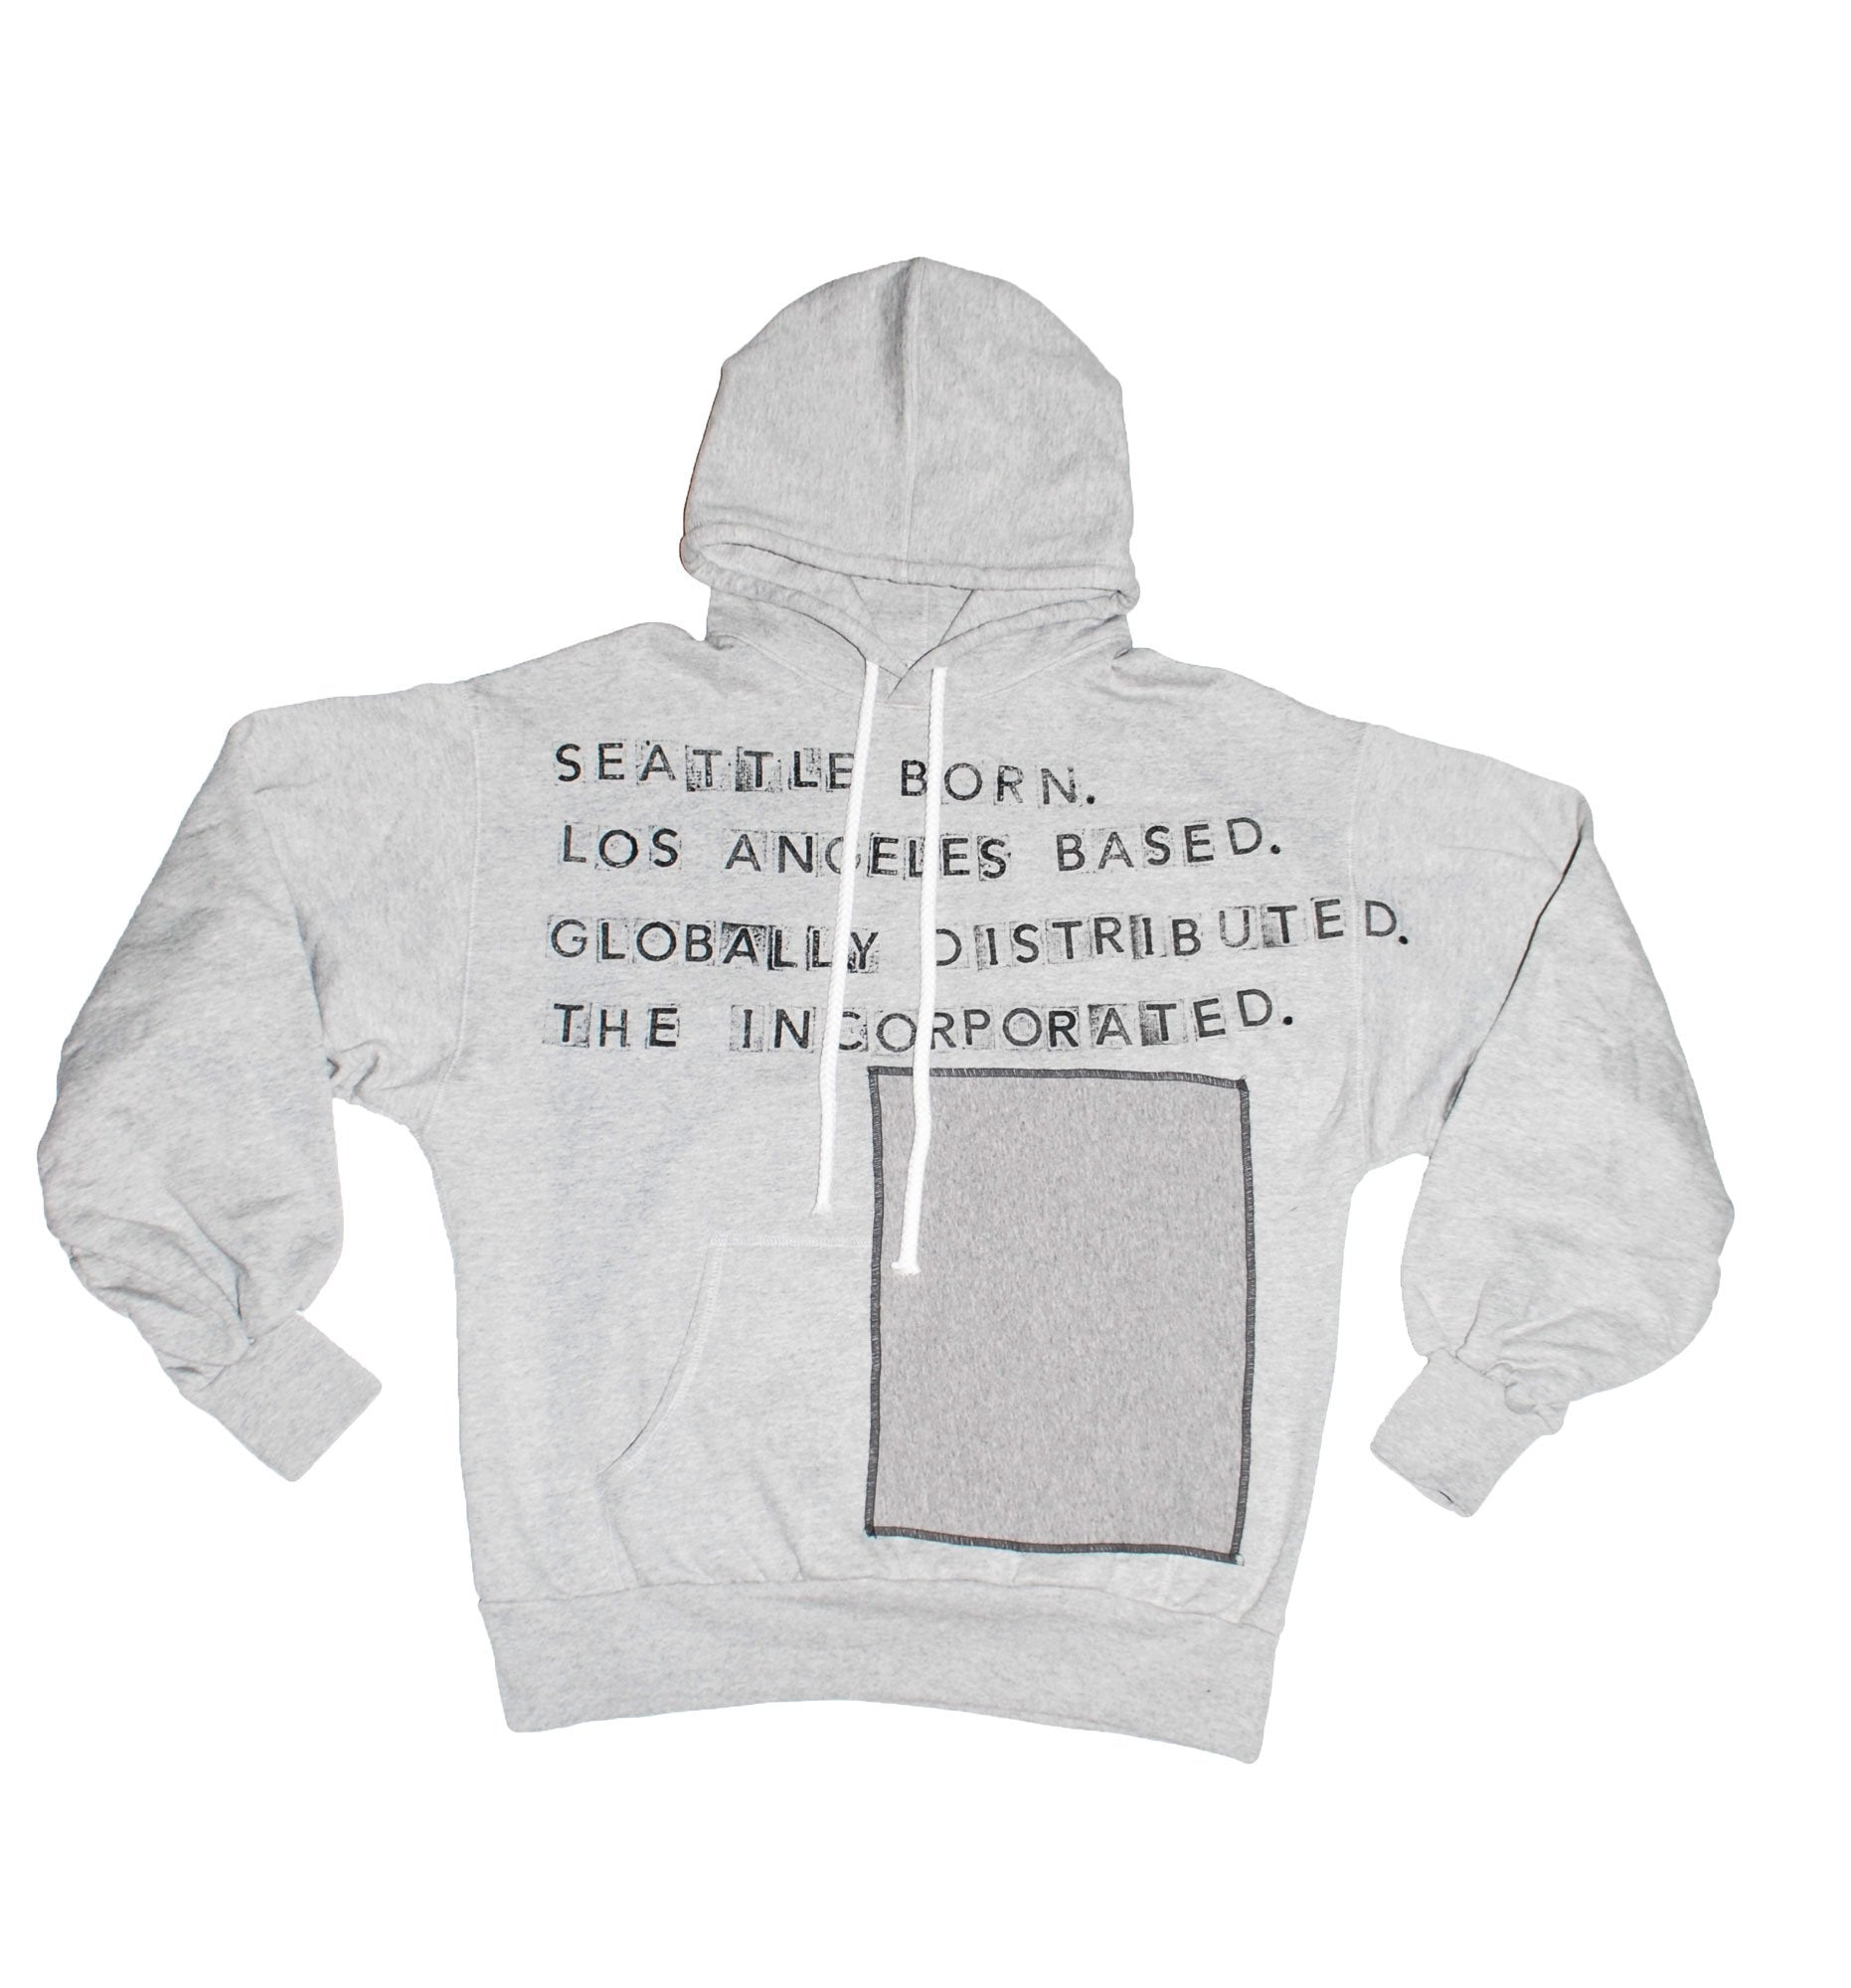 BORN BASED DISTRIBUTED CAPSULE HOODIE - The Incorporated